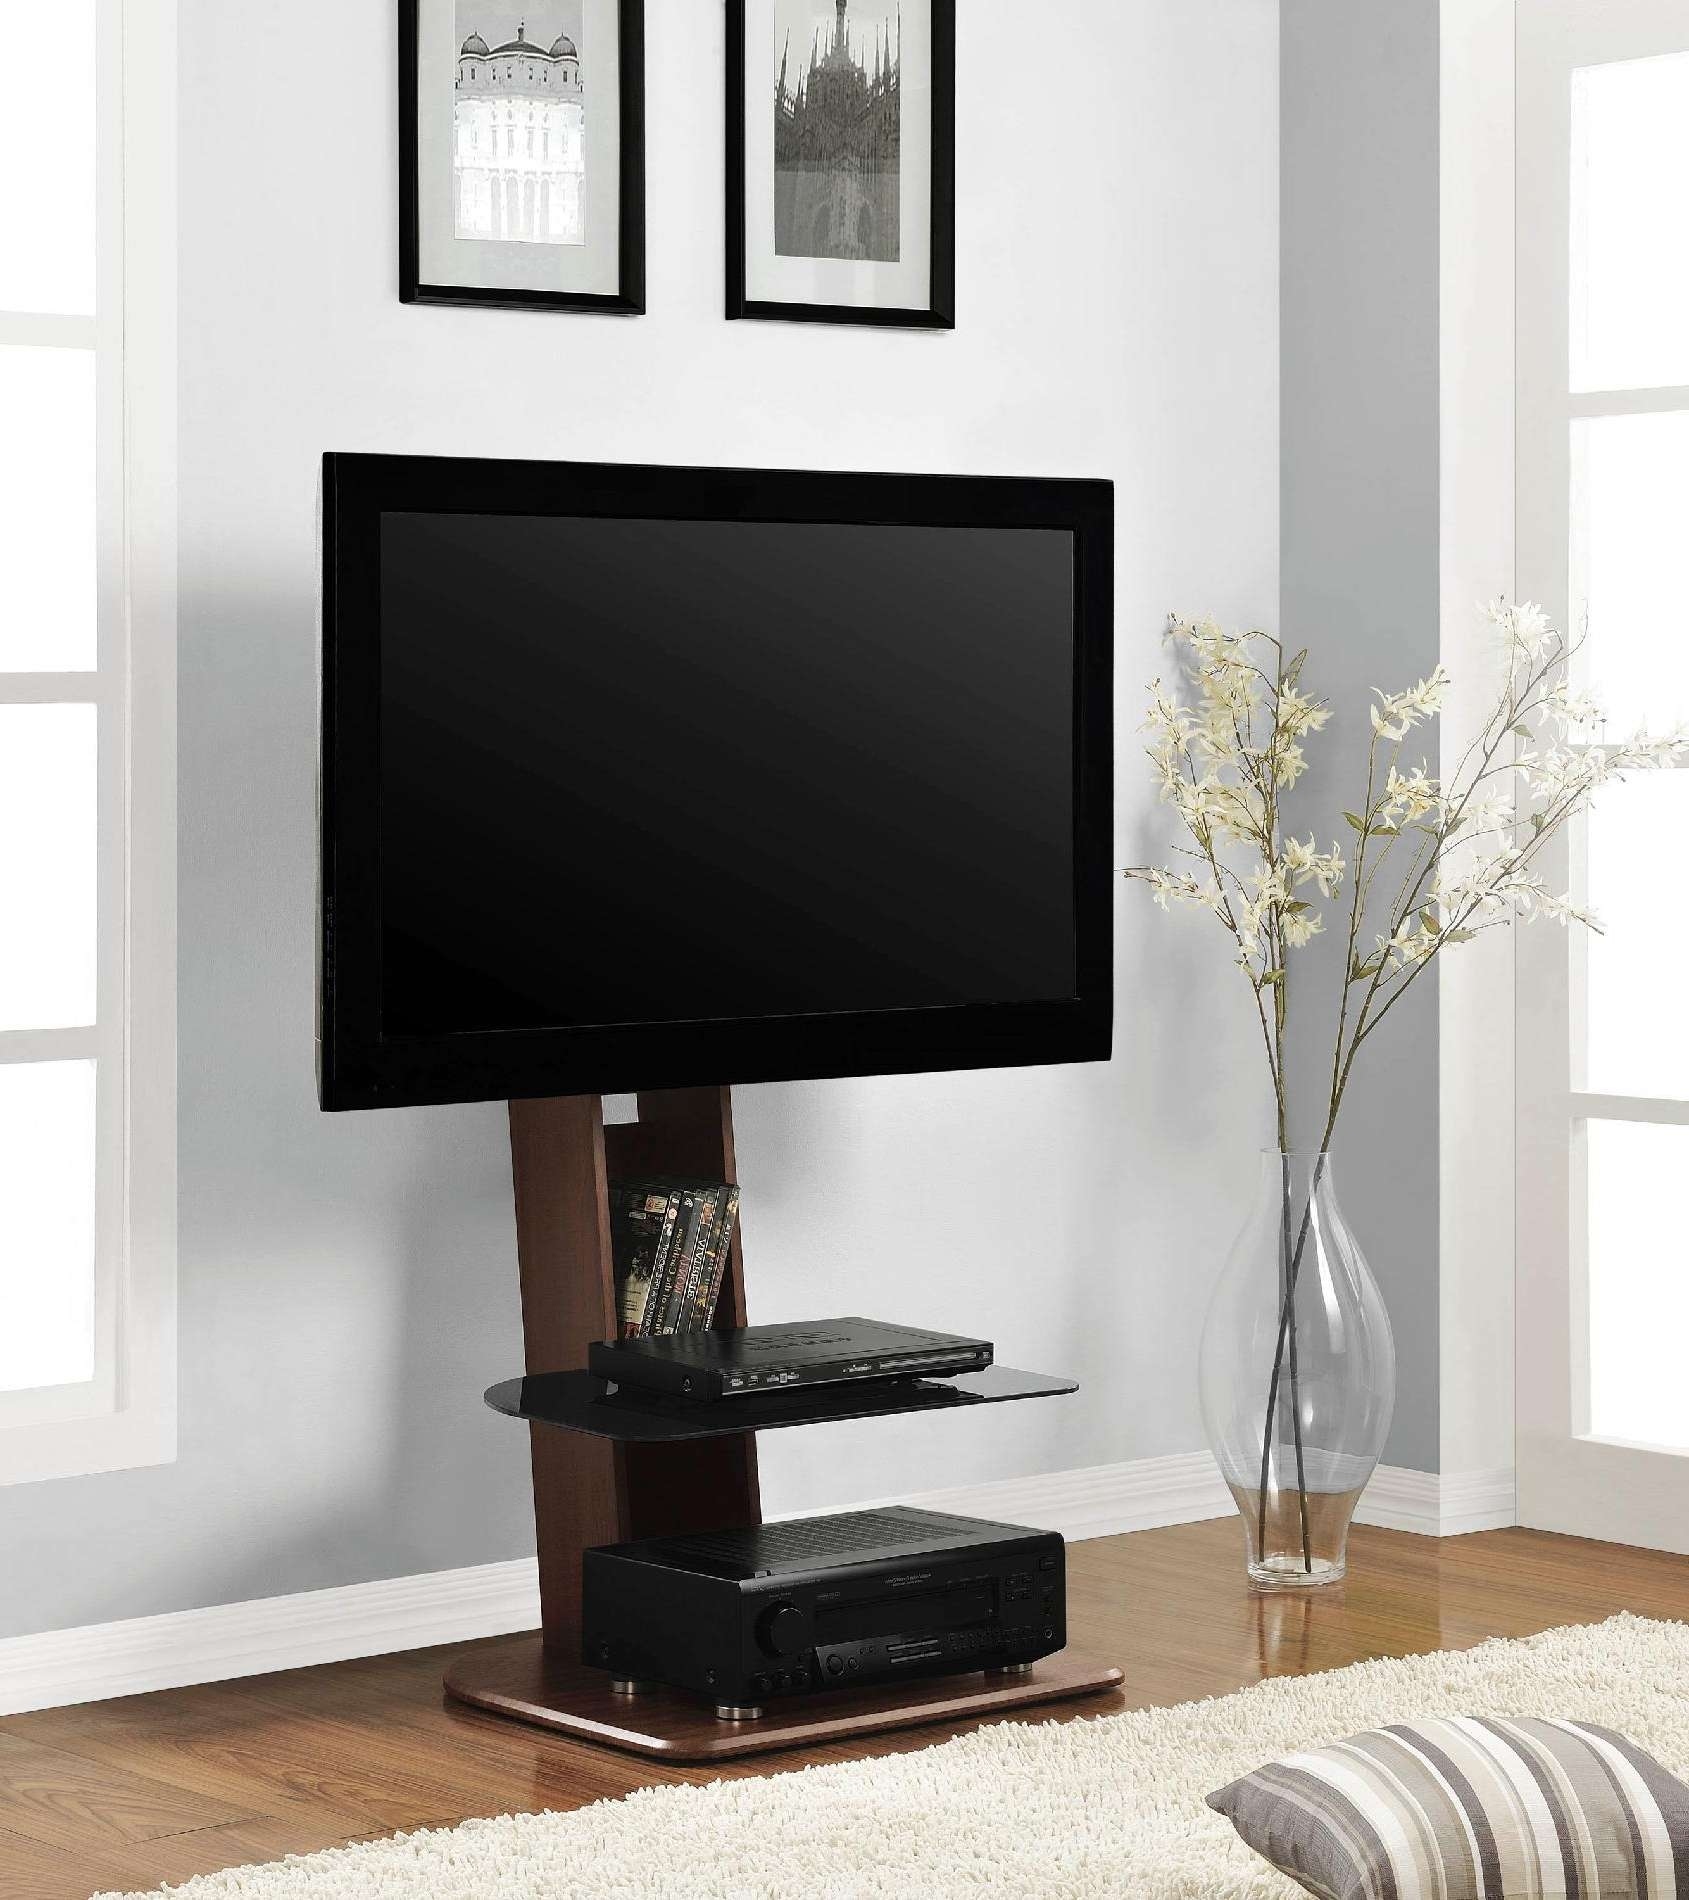 Furnitures Tv Stands Stylish Stand With Swivel Mount For Flat Throughout Wood And Glass Tv Stands For Flat Screens (View 16 of 20)